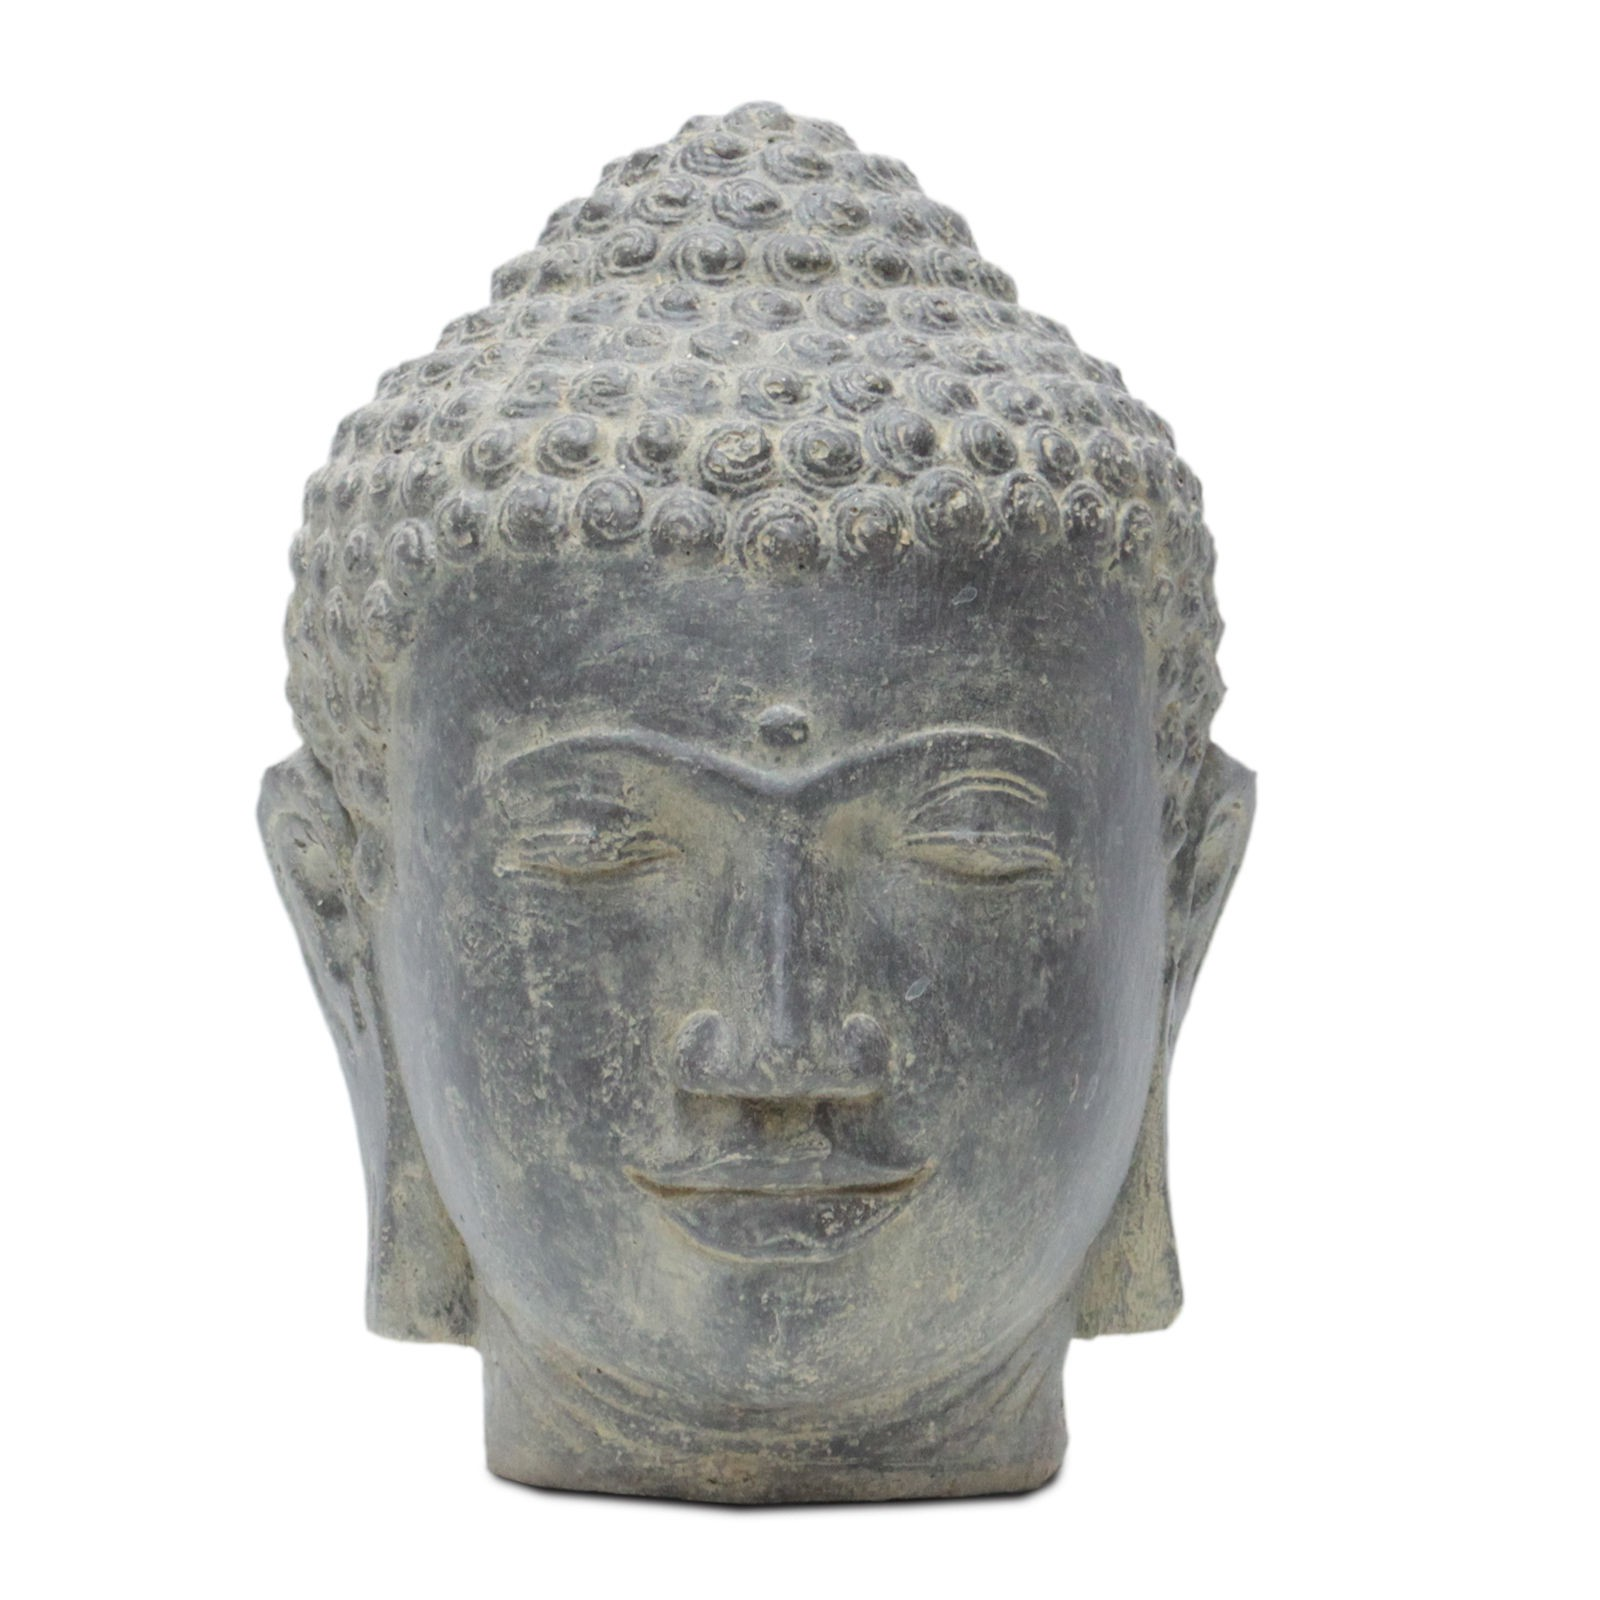 buddha kopf head figur skulptur stein lavasand bali garten deko 33cm ebay. Black Bedroom Furniture Sets. Home Design Ideas